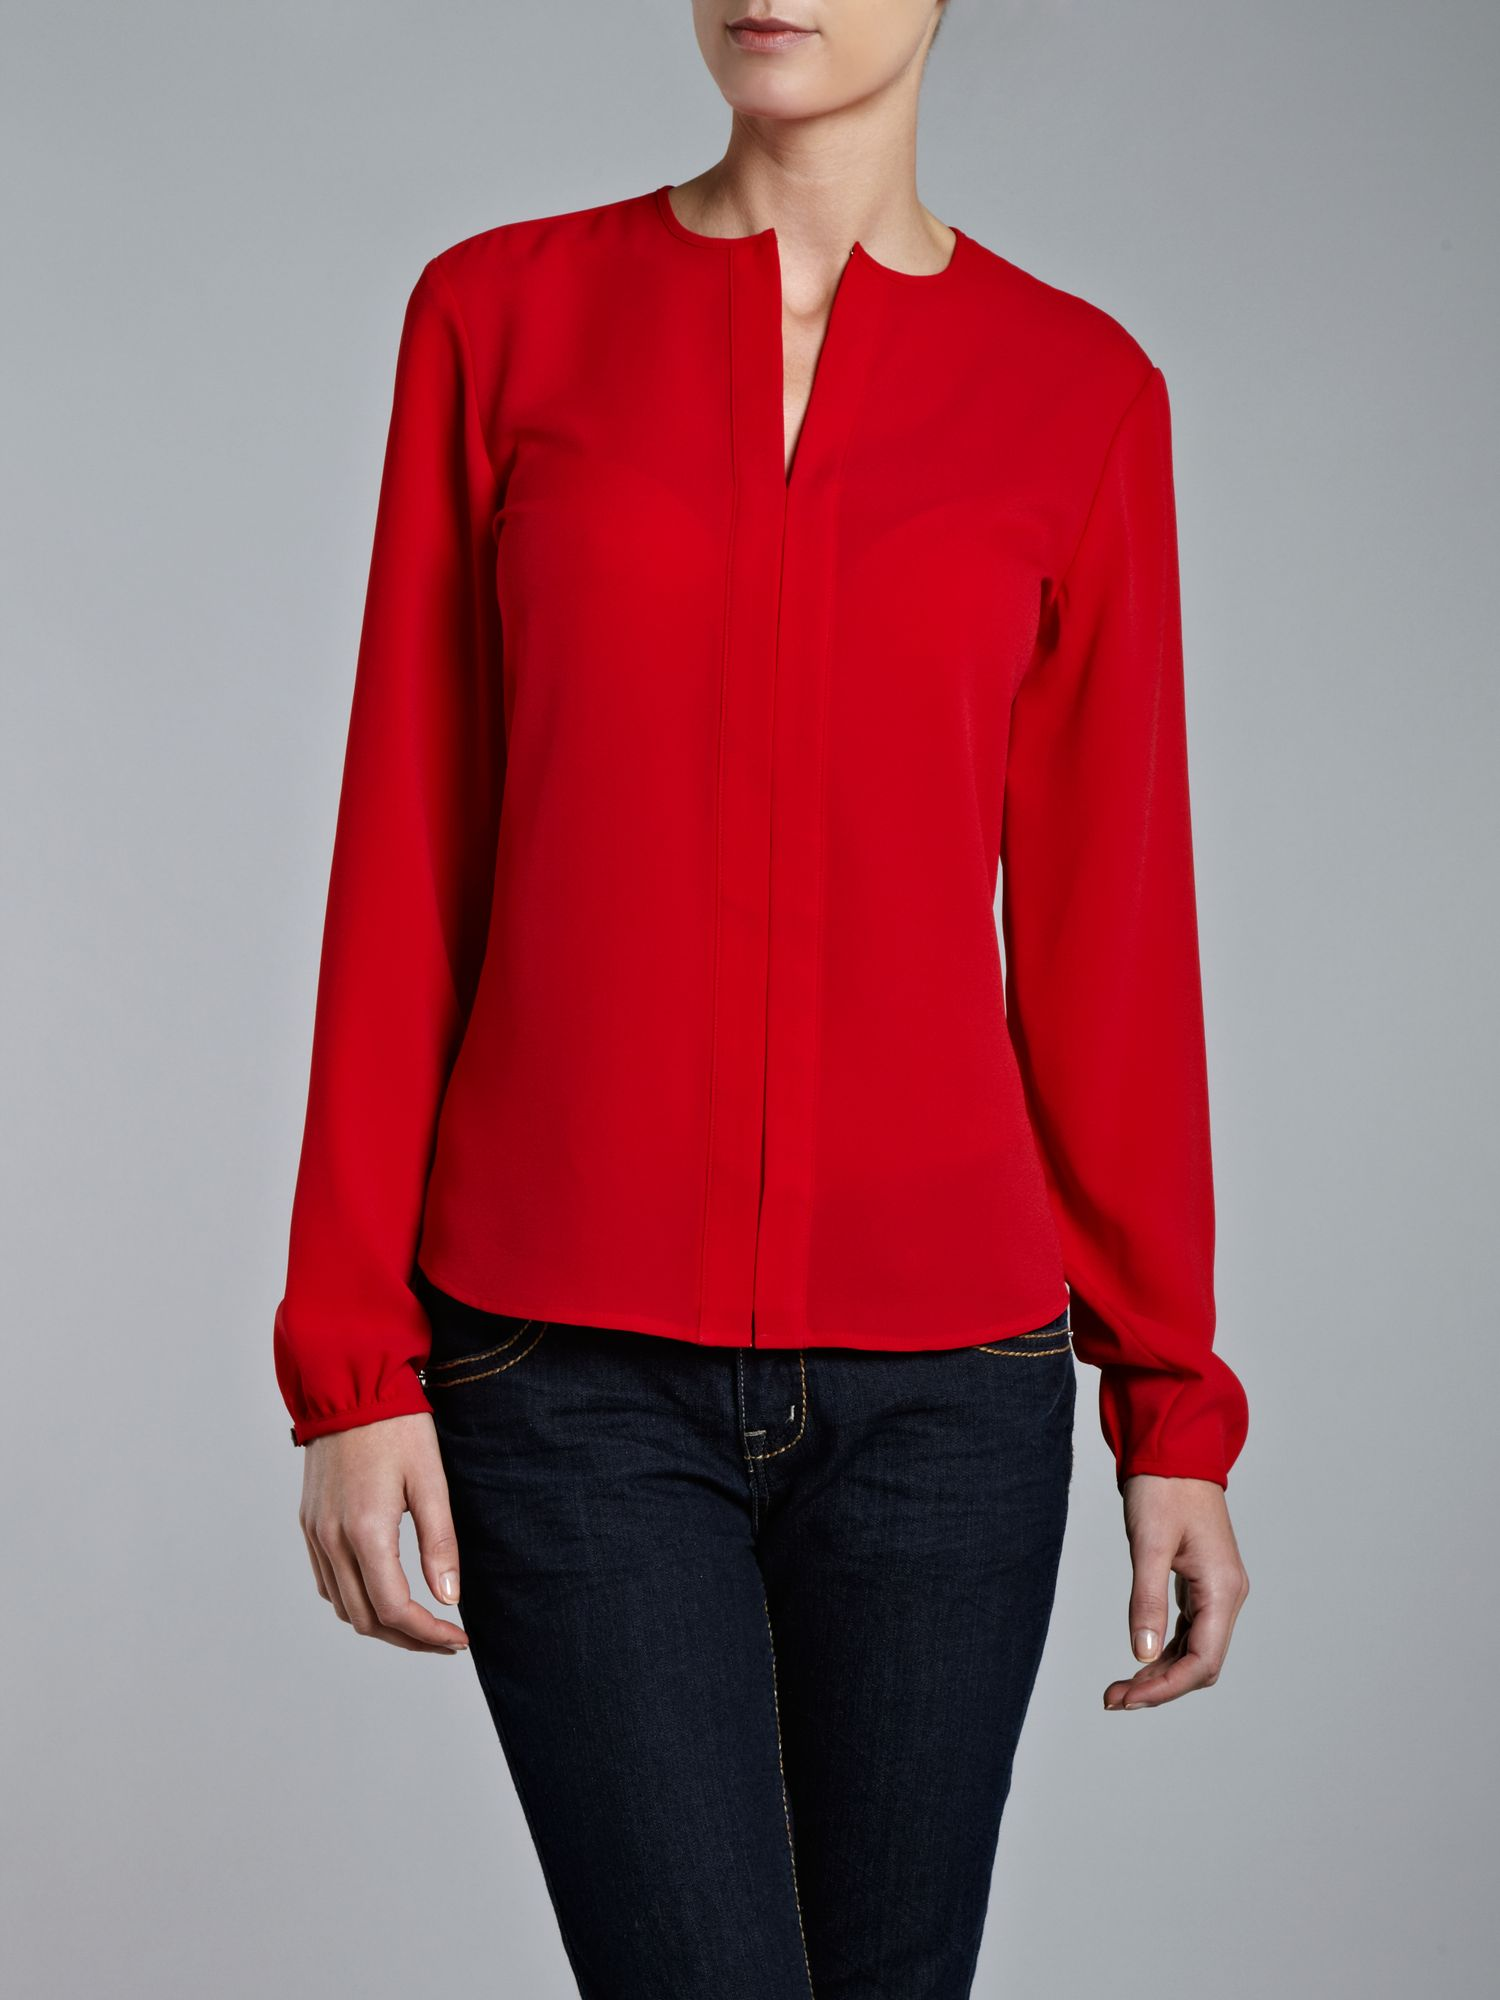 Find long sleeve red blouse at ShopStyle. Shop the latest collection of long sleeve red blouse from the most popular stores - all in one place.